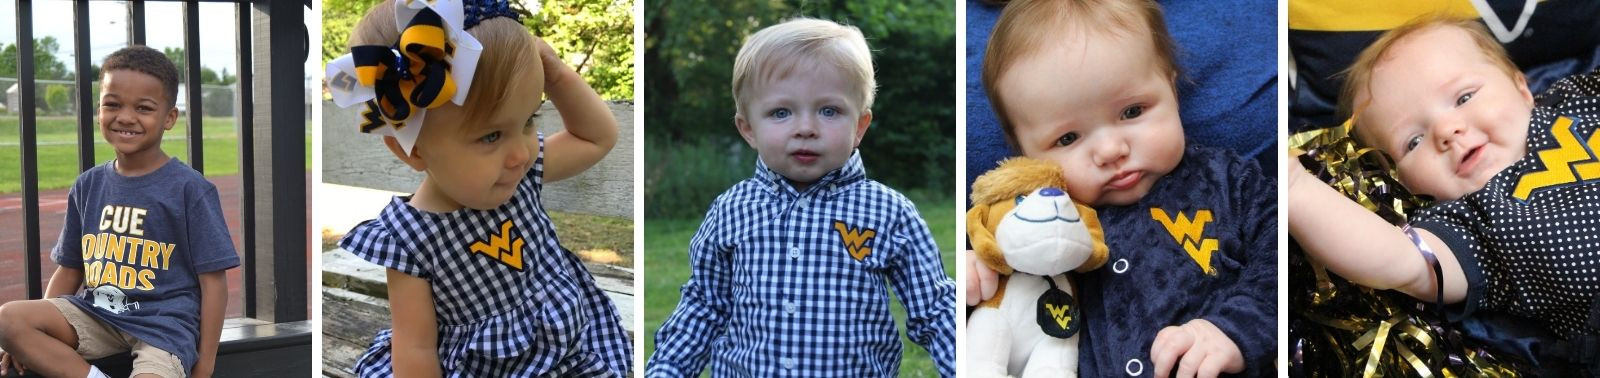 Toddler & Infant WVU Clothing & Accessories